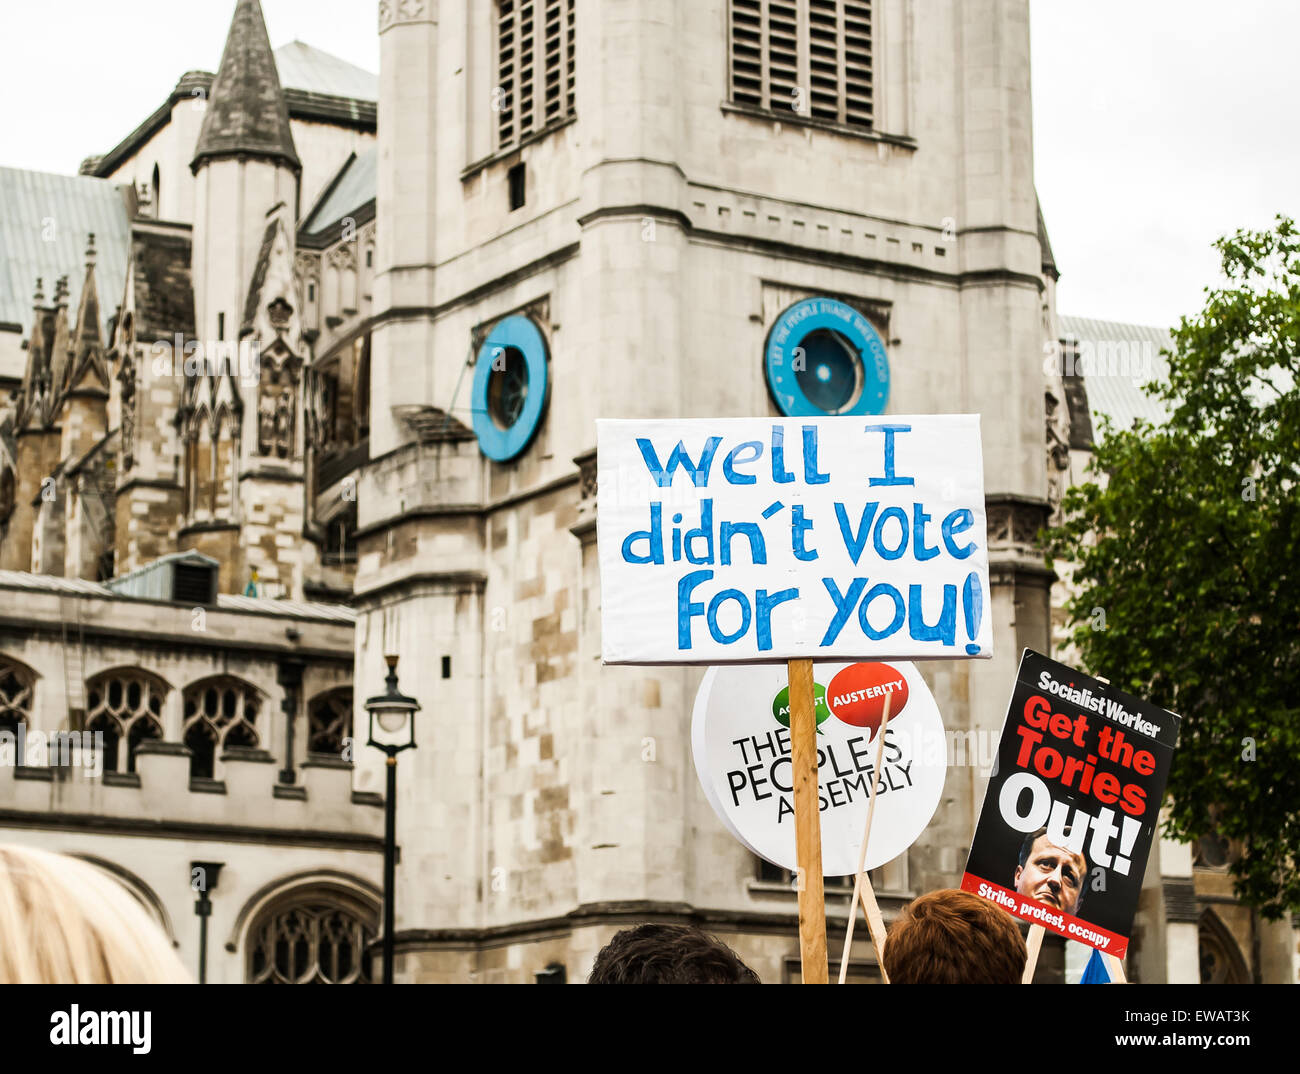 A sign at the anti-austerity march in London, June 2015 - Stock Image